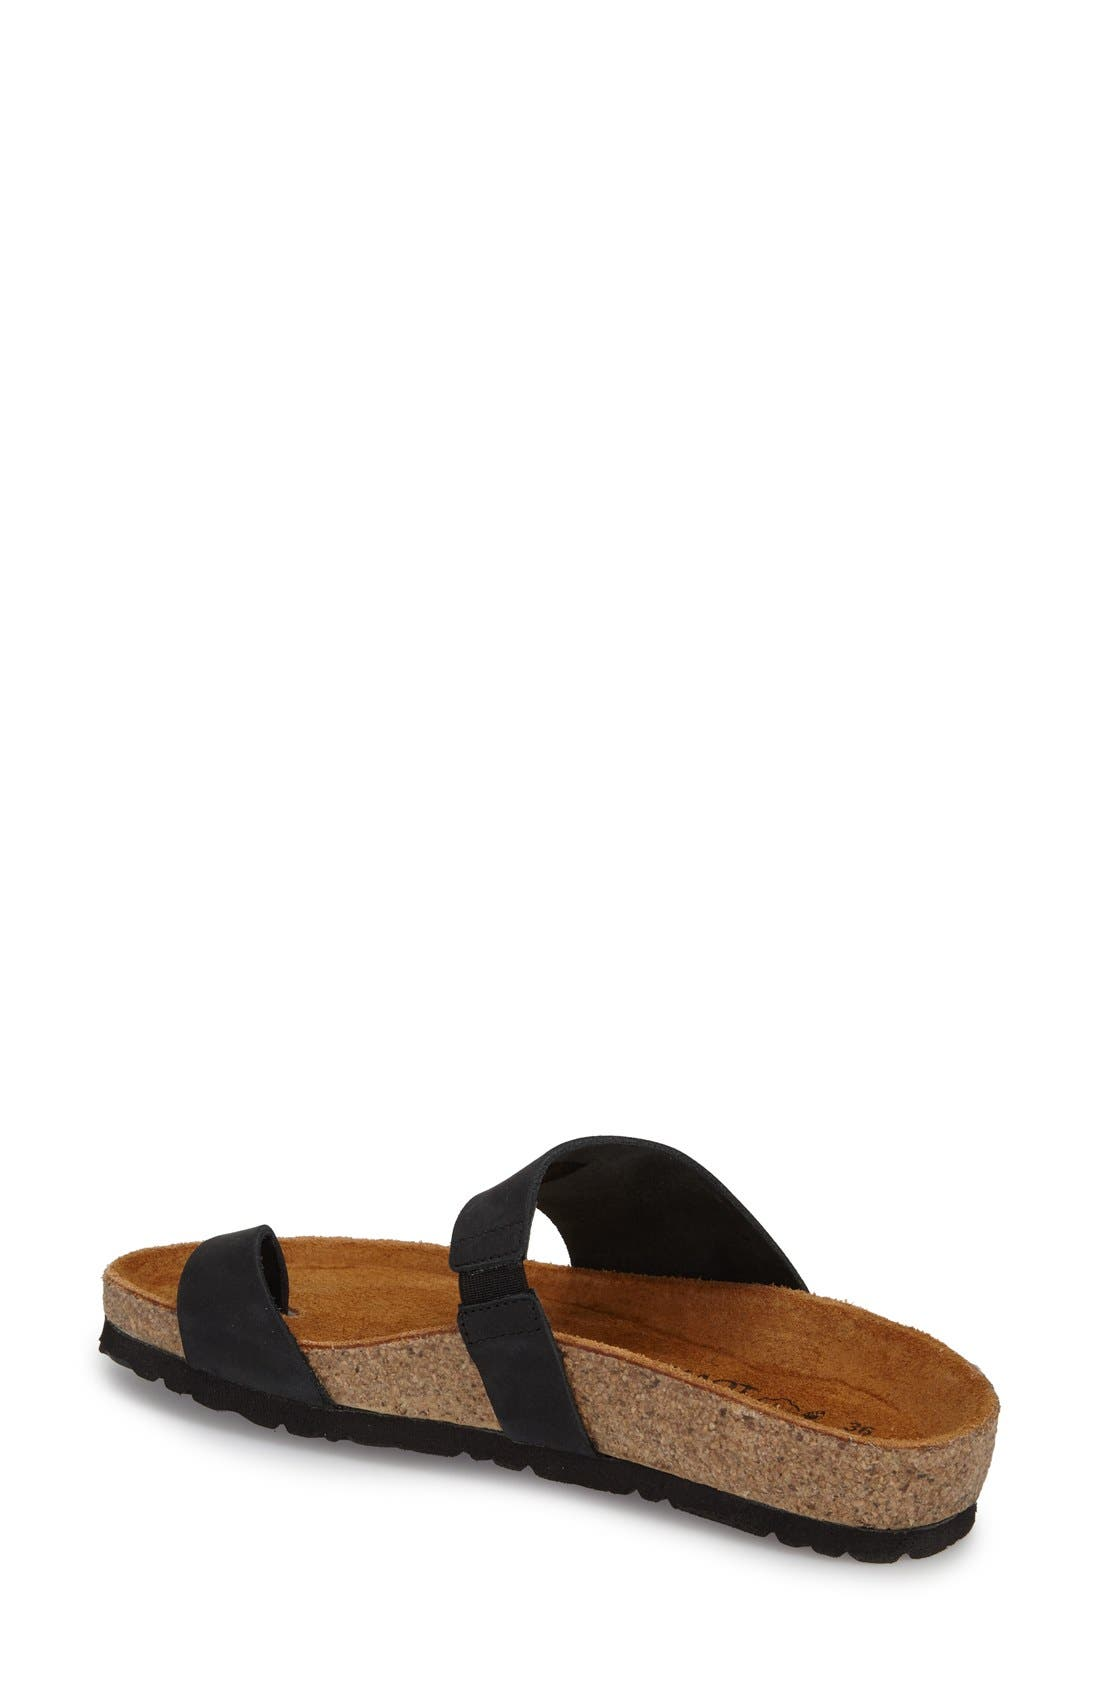 'Santa Fe' Sandal,                             Alternate thumbnail 2, color,                             Black Nubuck Leather